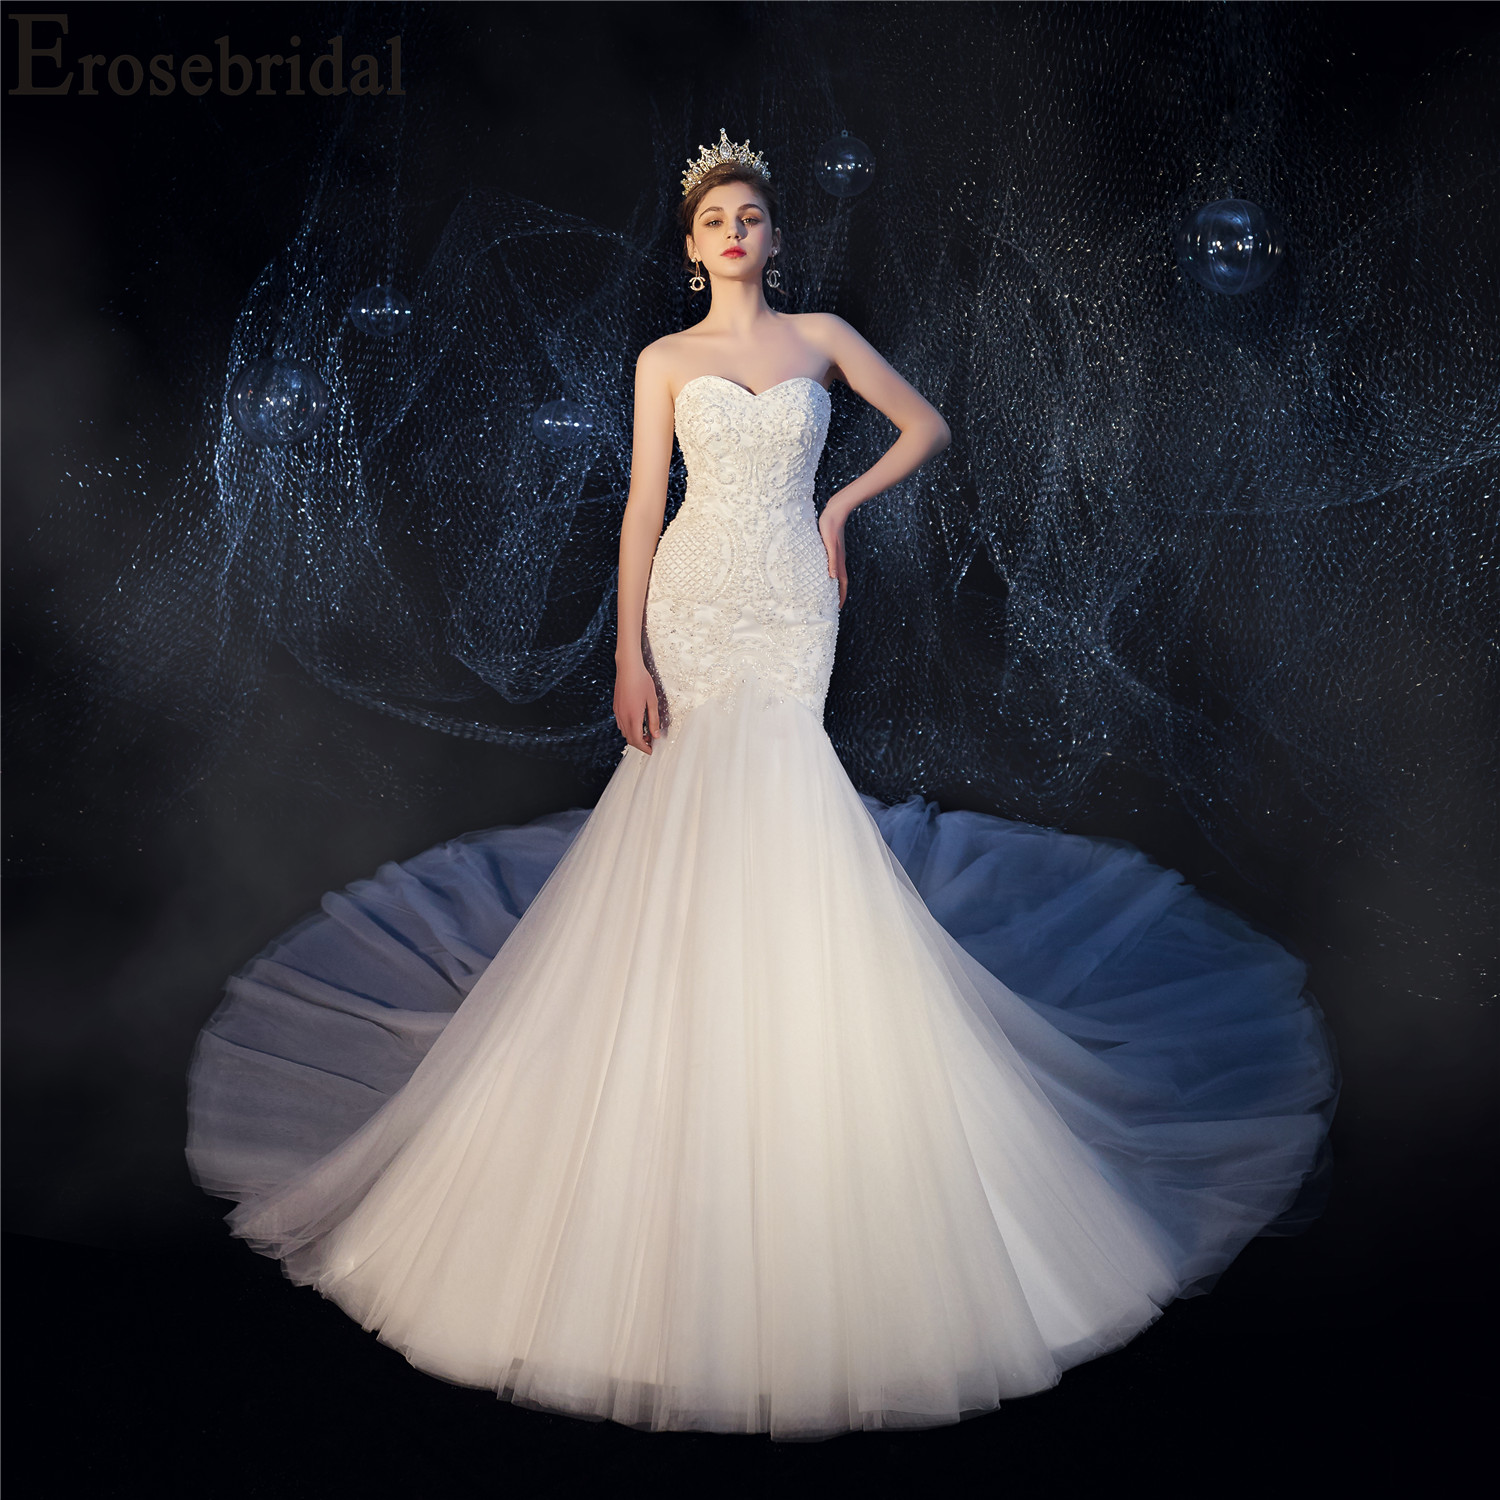 2019 Mermaid Wedding Dress Luxury Beaded Pearls Bridal Gown with Cathedral 2M Train Lace Up Back